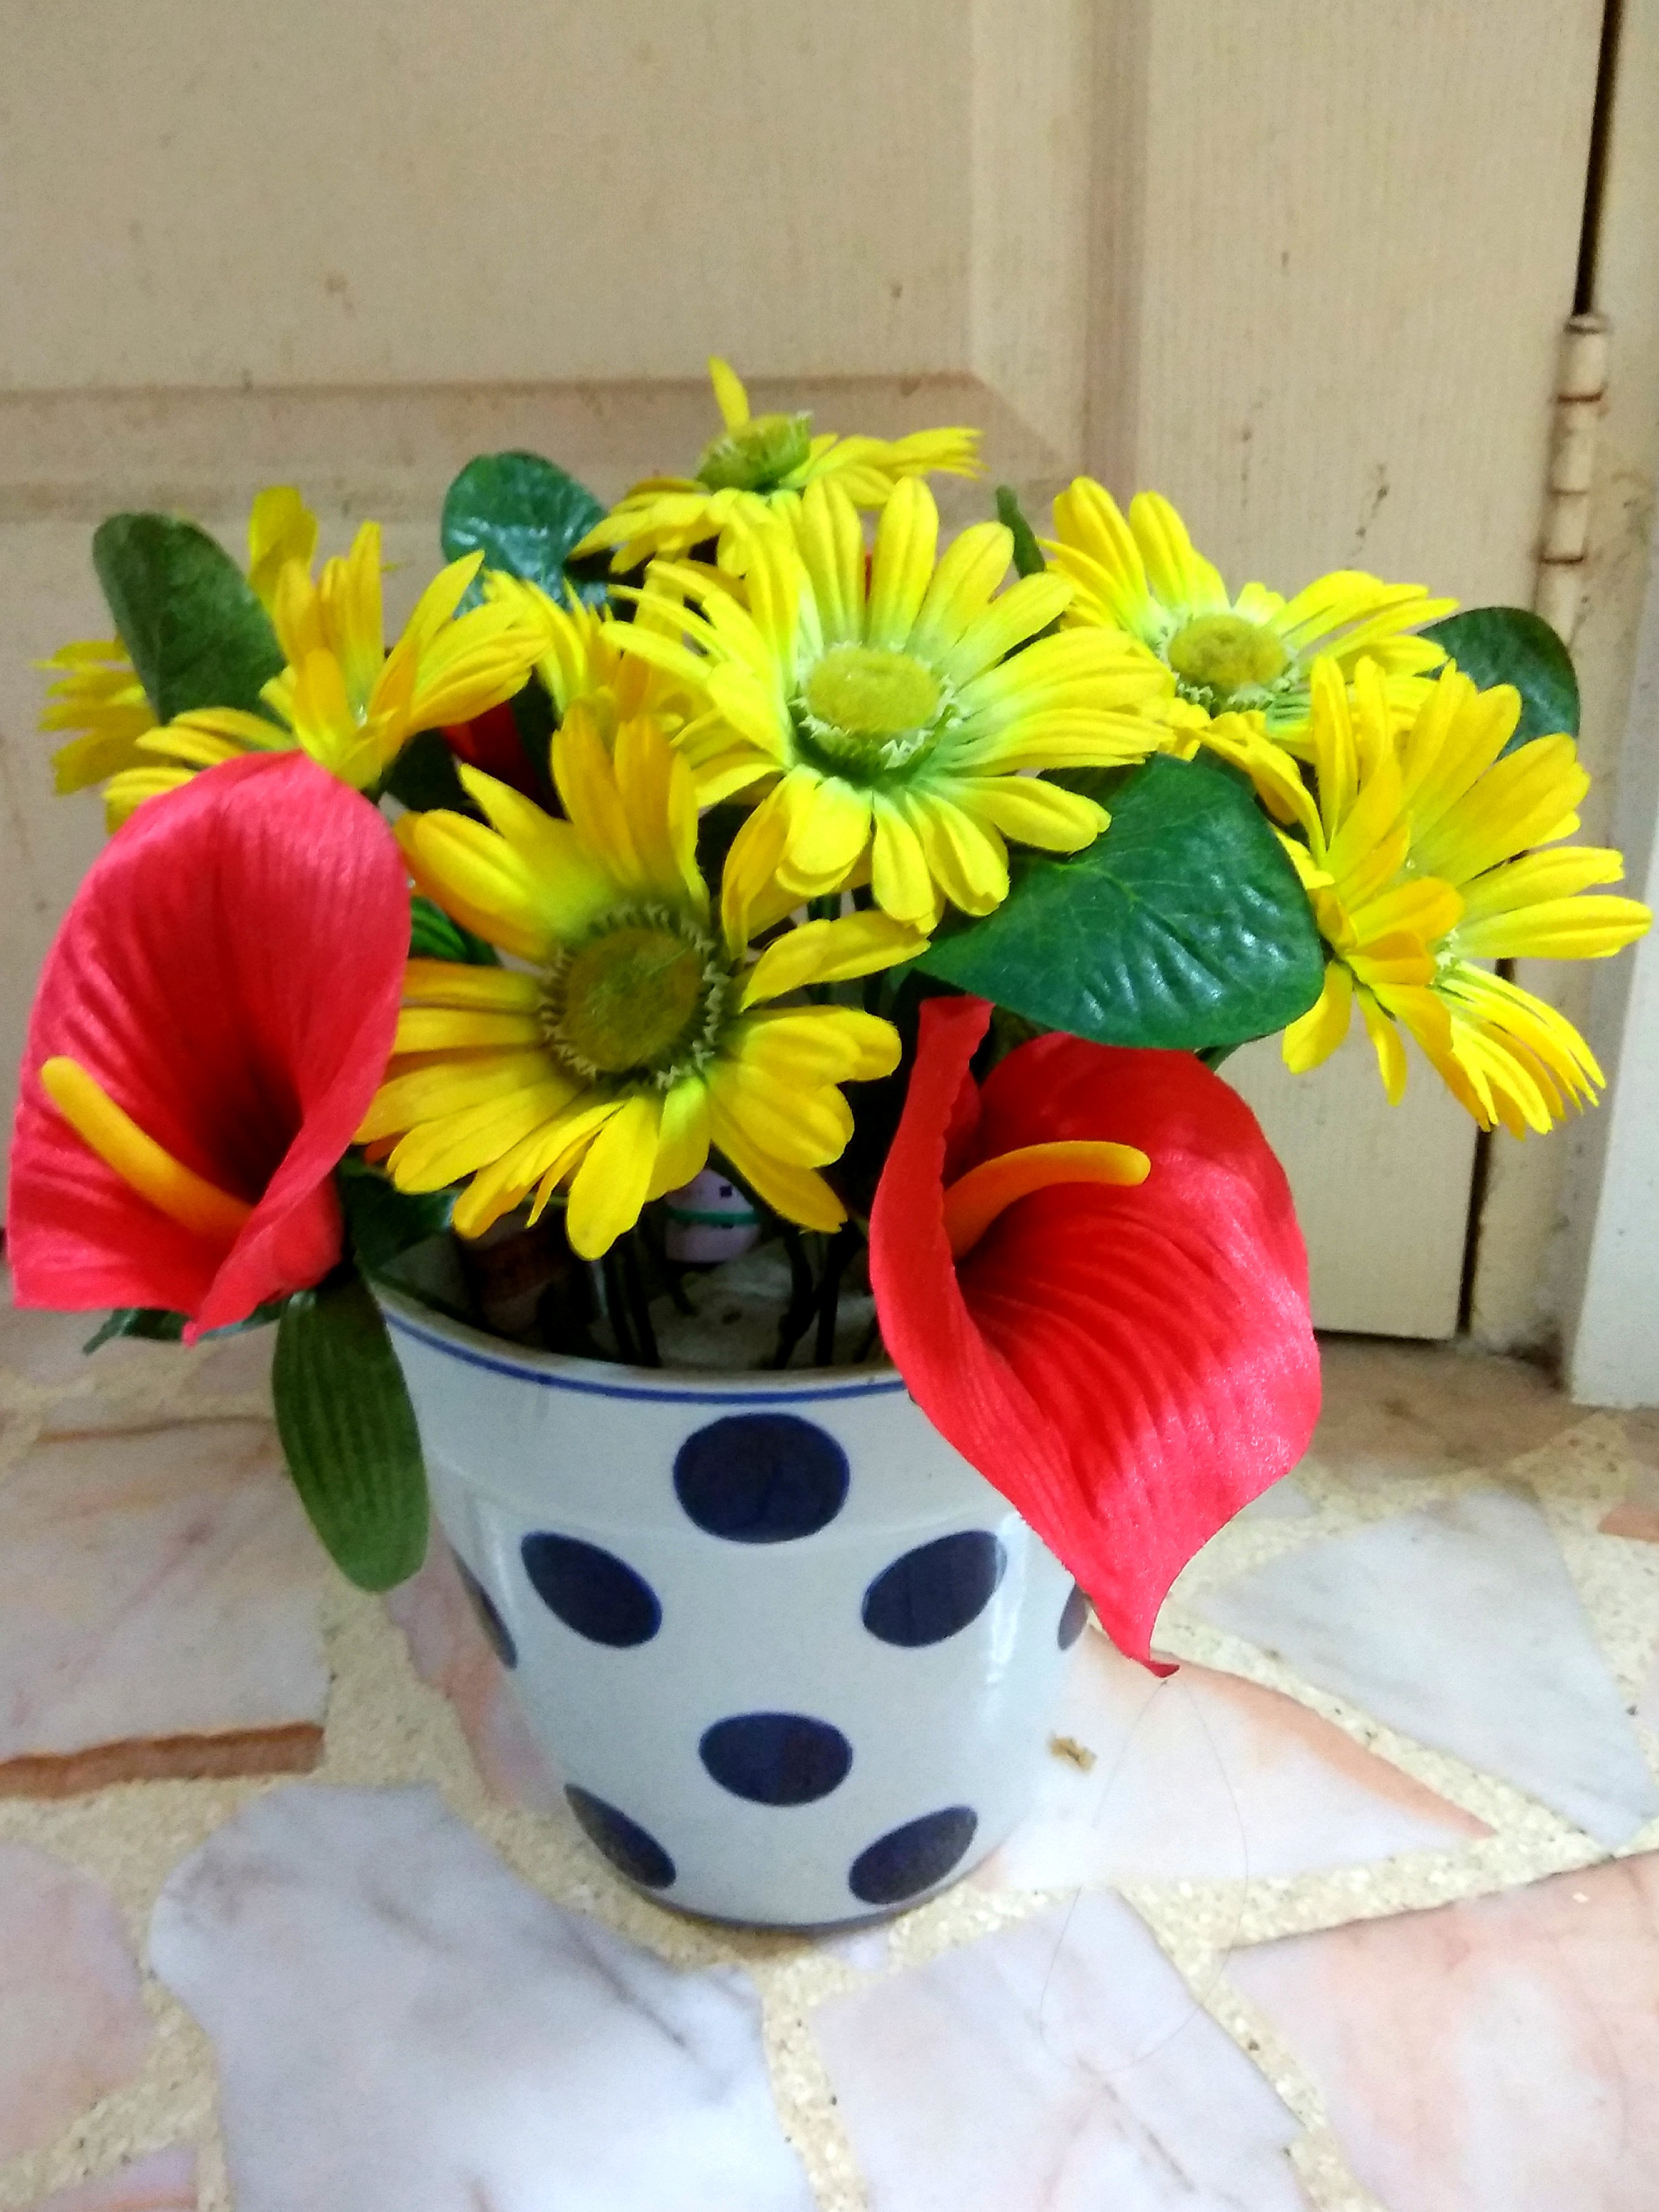 Rare Soccer Vase With Beautiful Flowers Up 30 Now 26